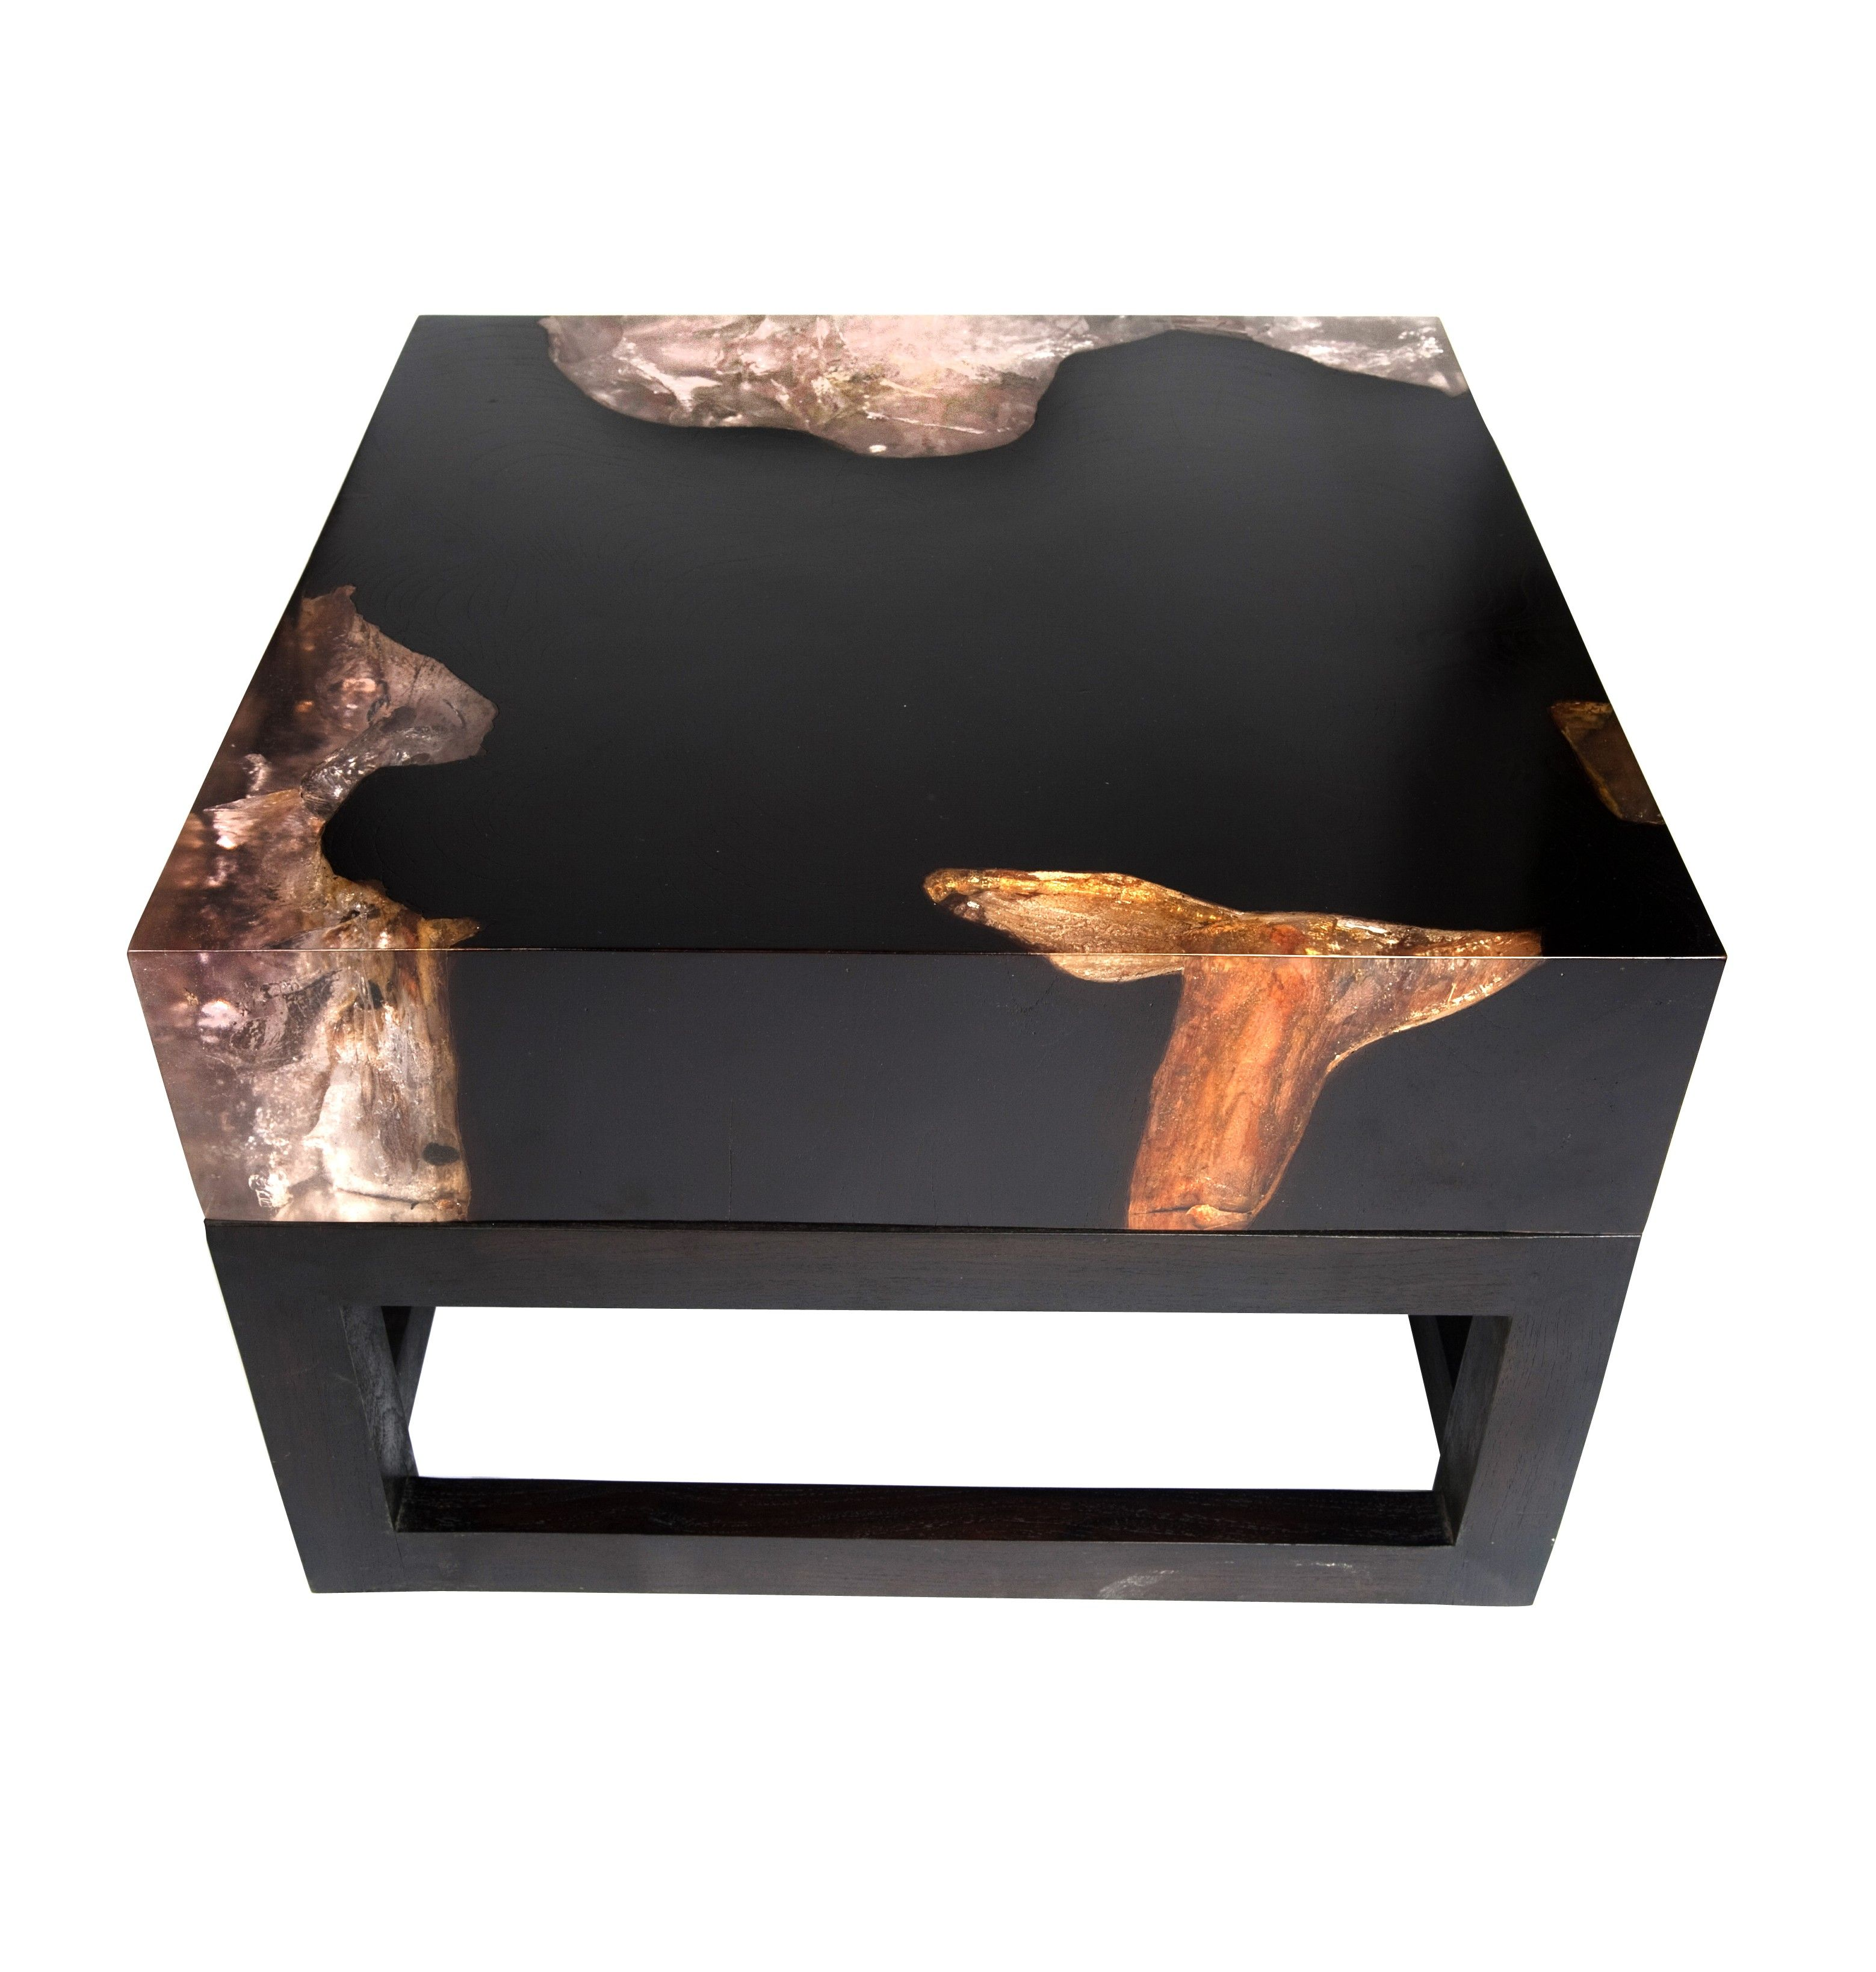 Reclaimed teak wood cracked resin side tables youtube - Teak Cracked Resin Table With Base Andrianna Shamaris